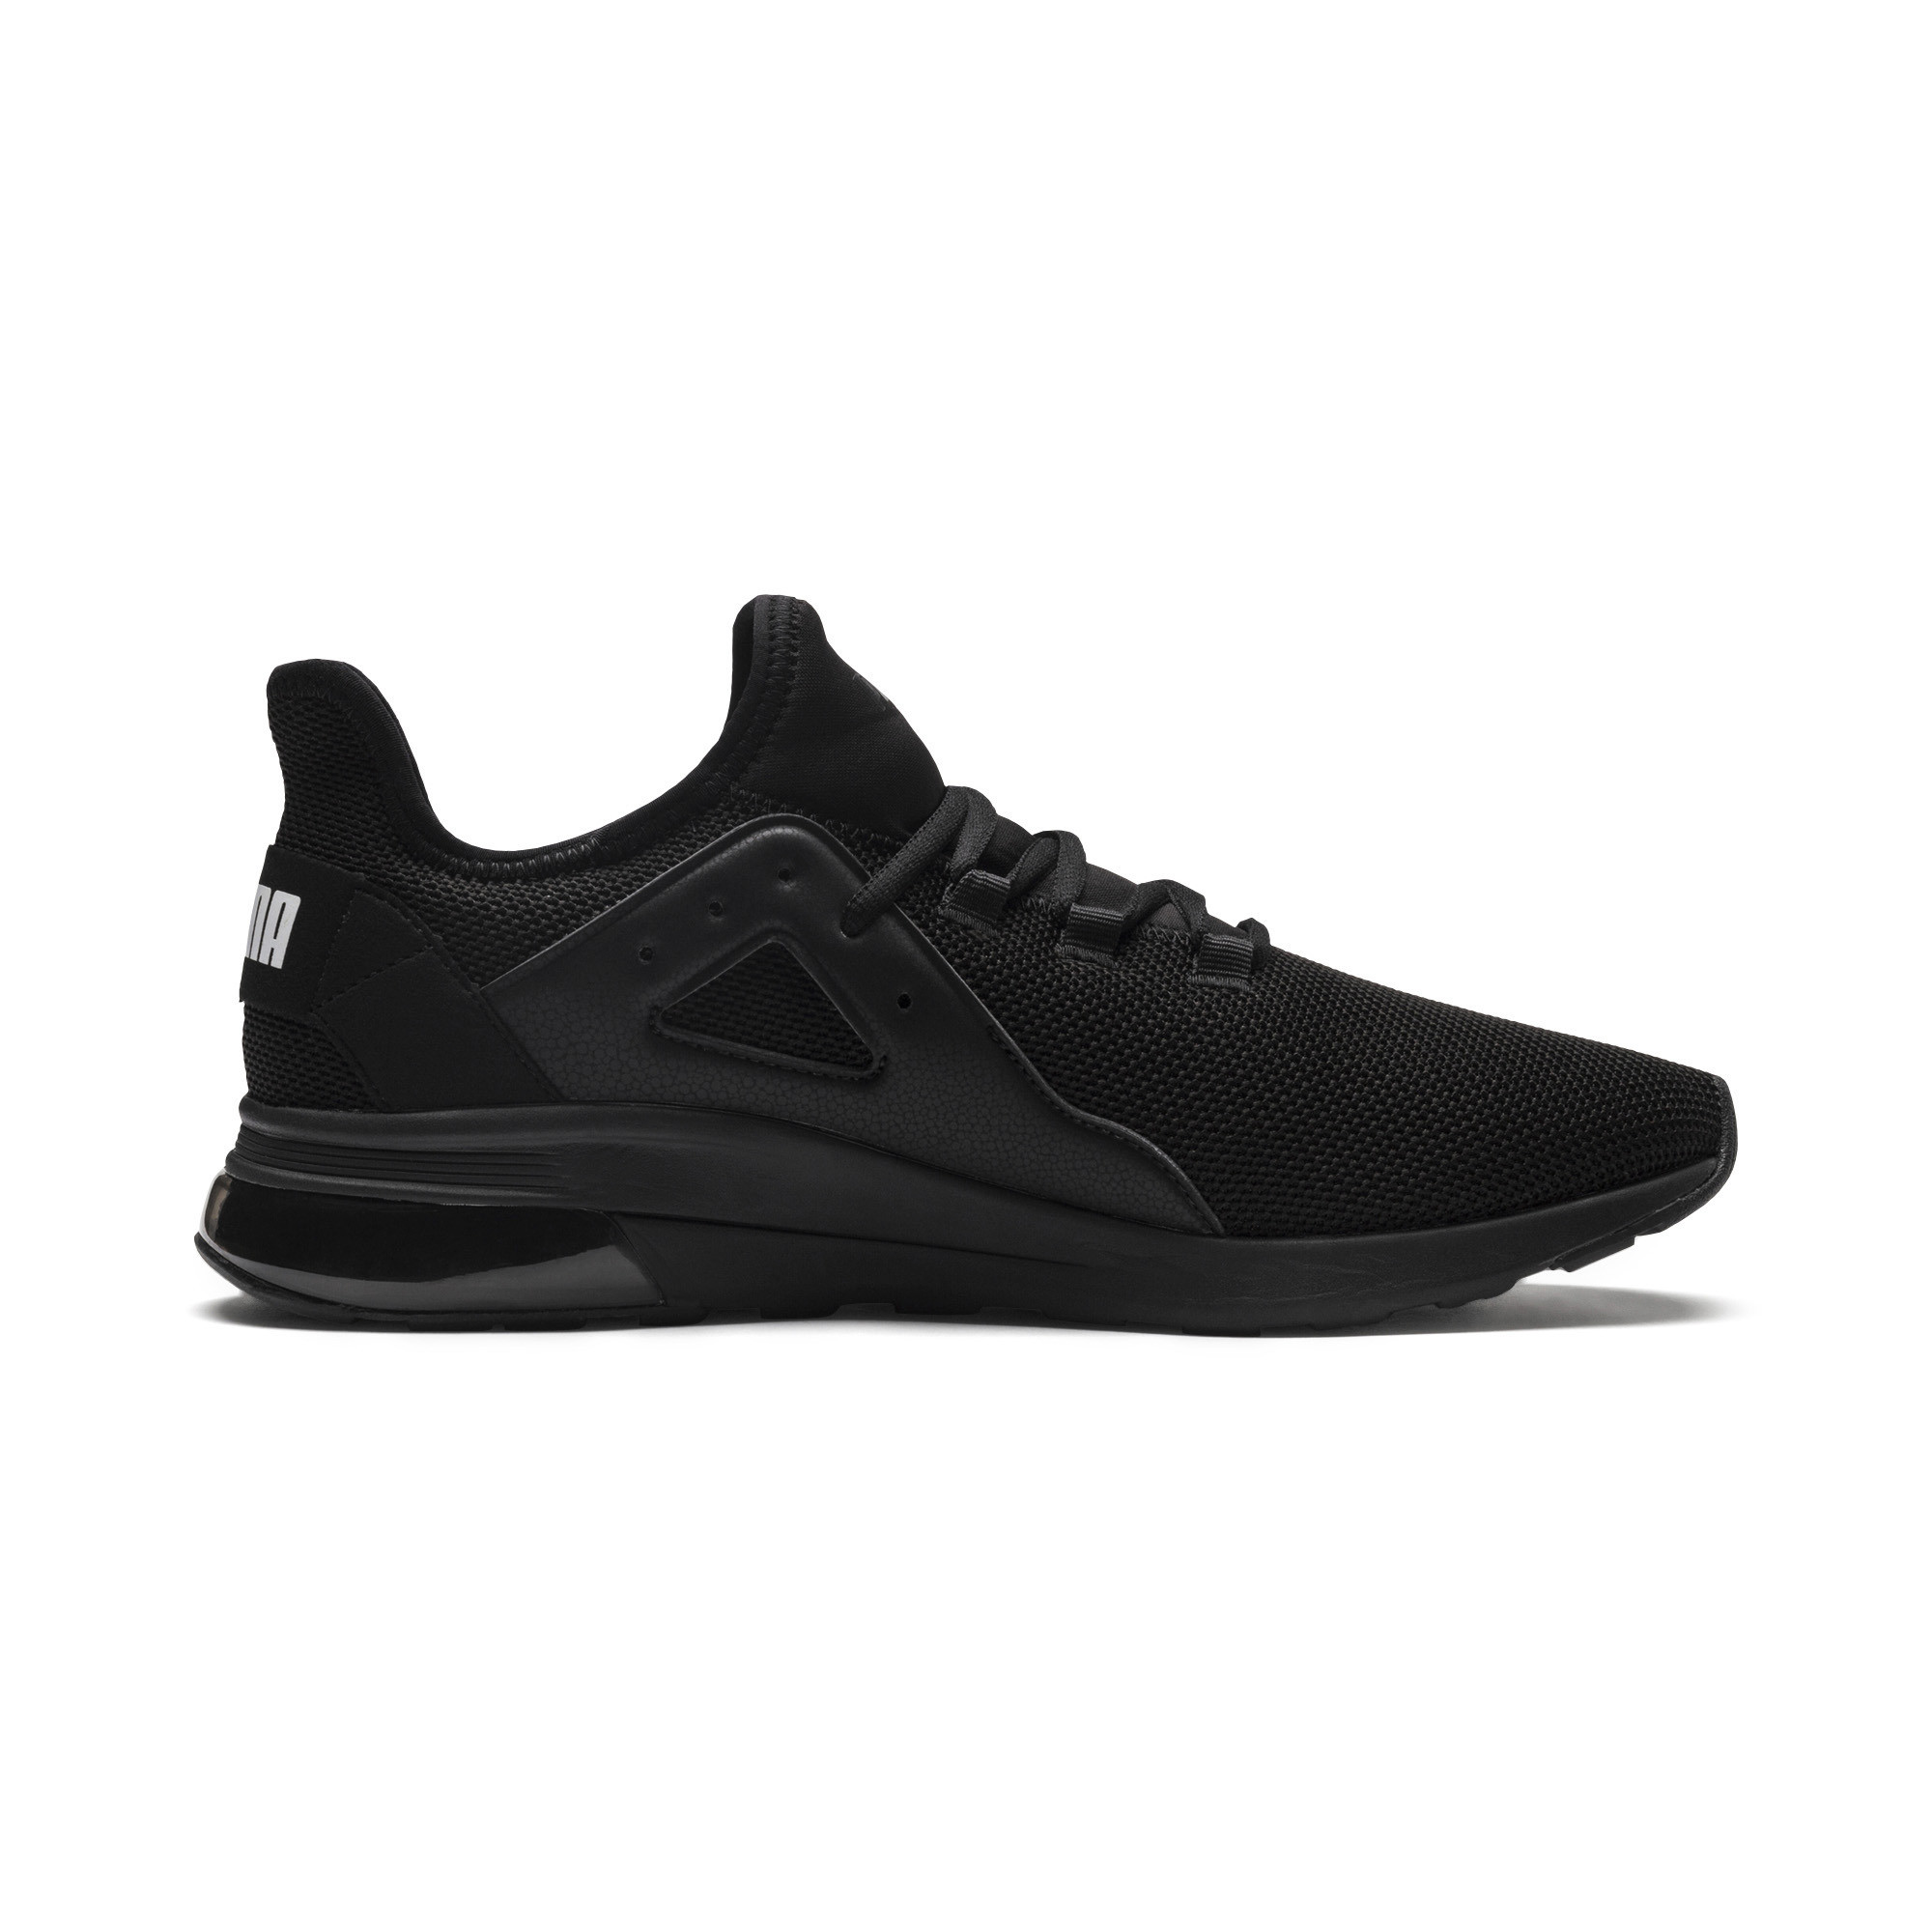 PUMA-Electron-Street-Sneakers-Men-Shoe-Basics thumbnail 12